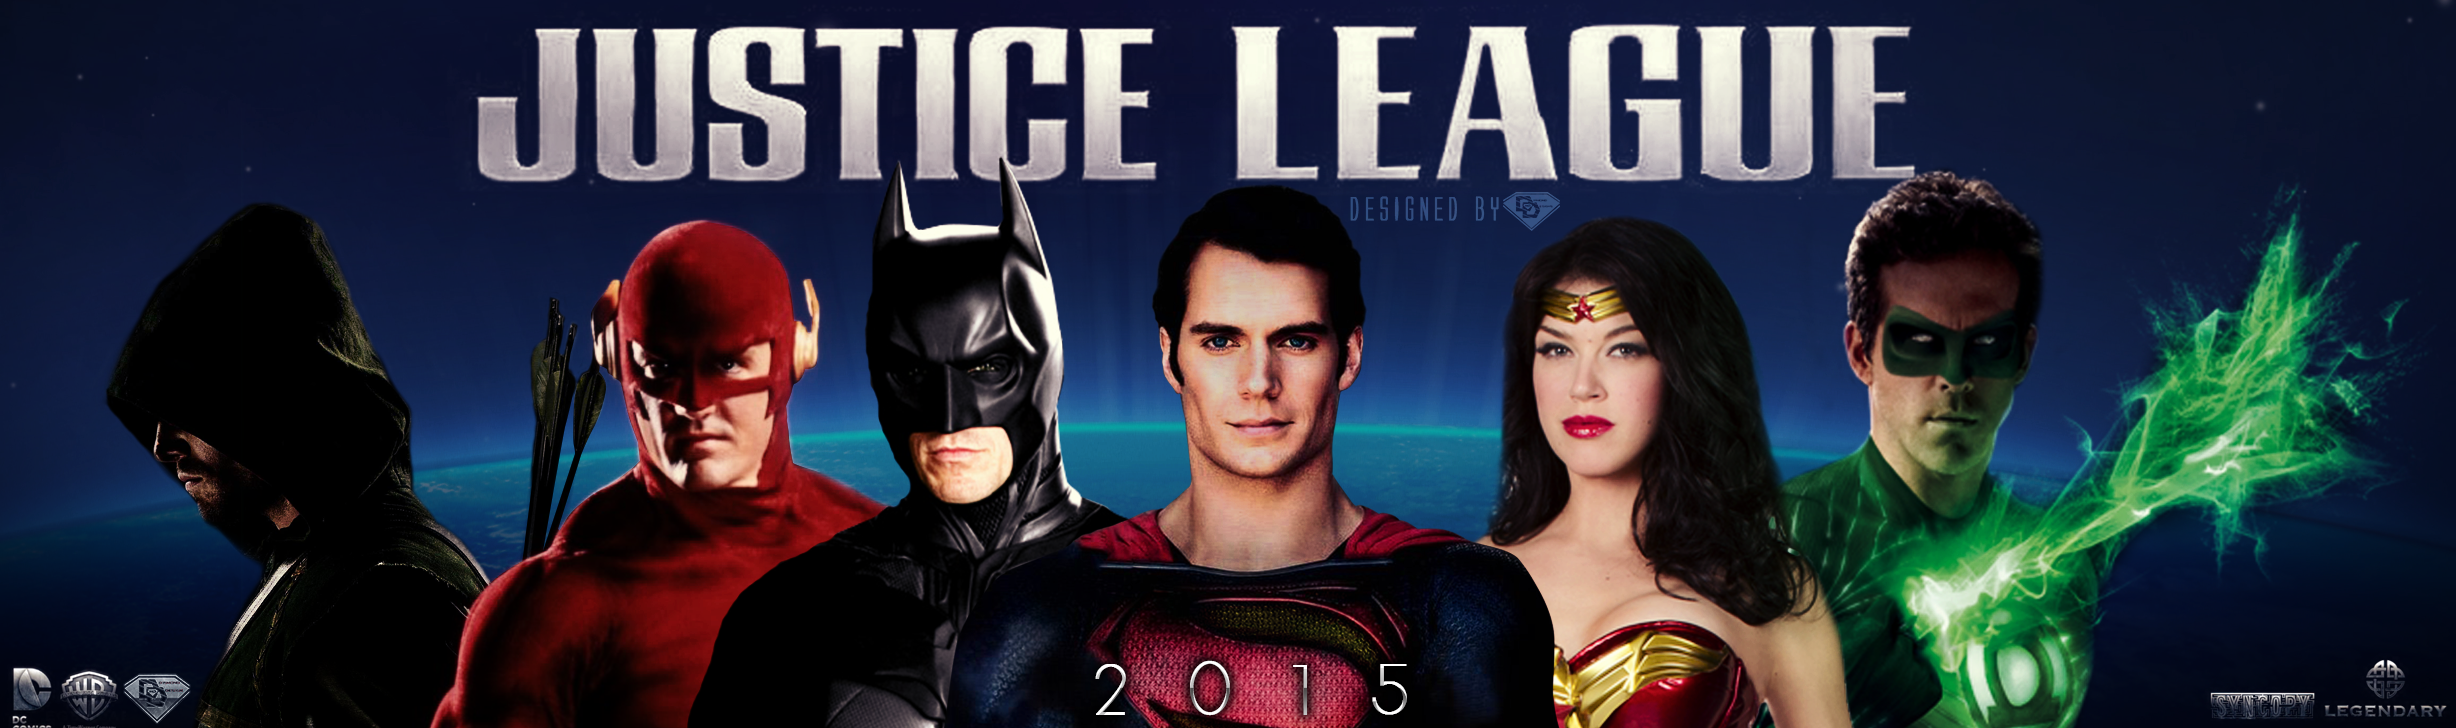 justice_league_2015_banner_by_diamonddesignhd-d5nrwls